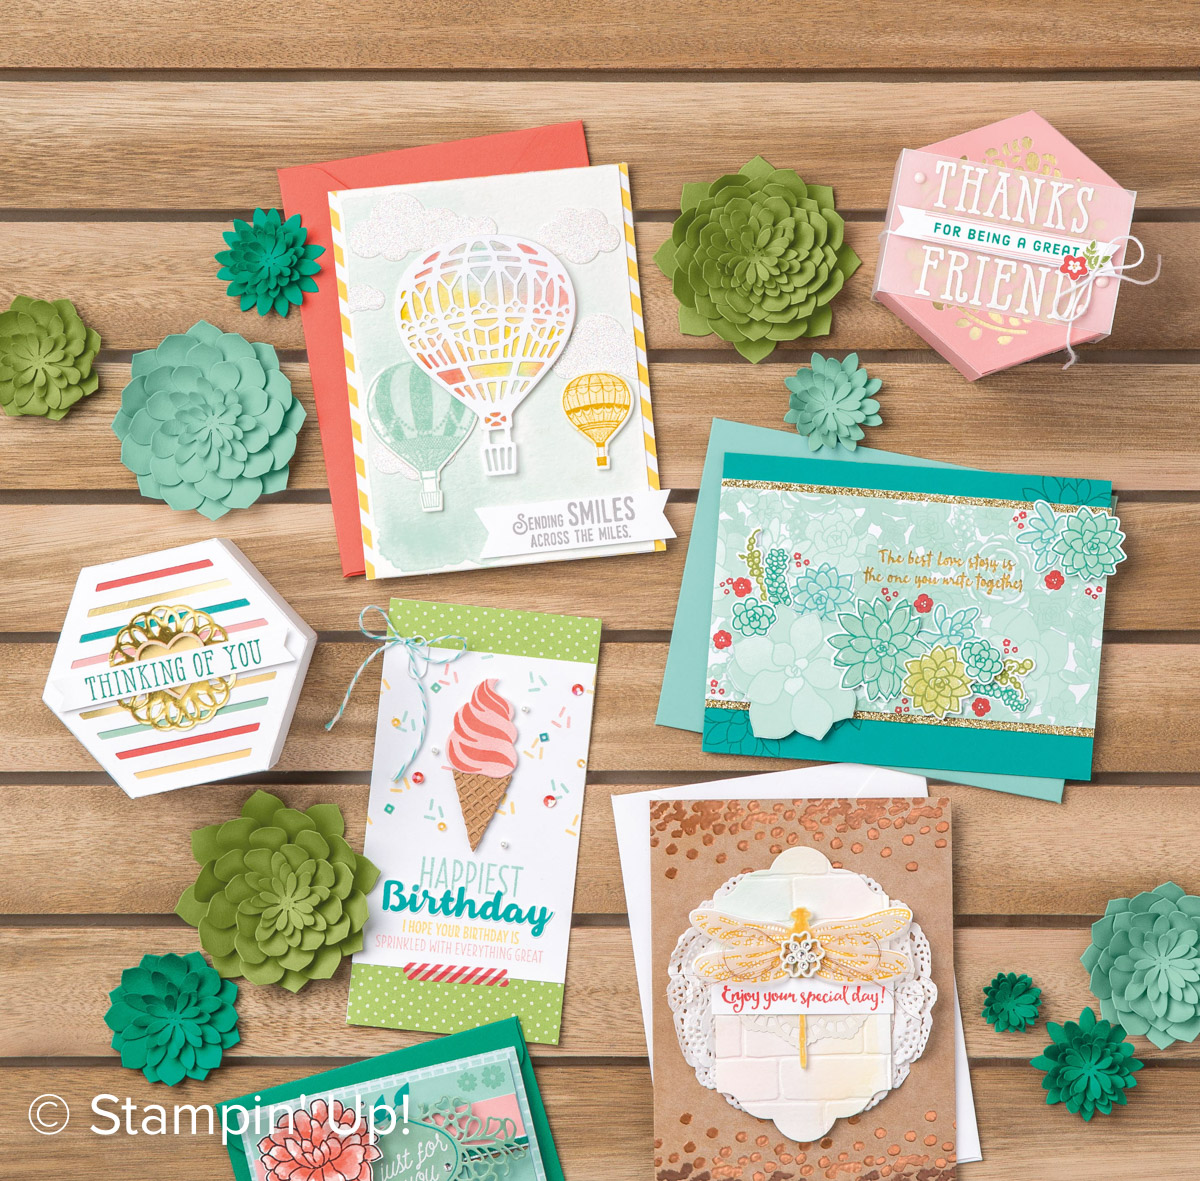 NEW! 2017 Stampin' Up! Occasions Catalog